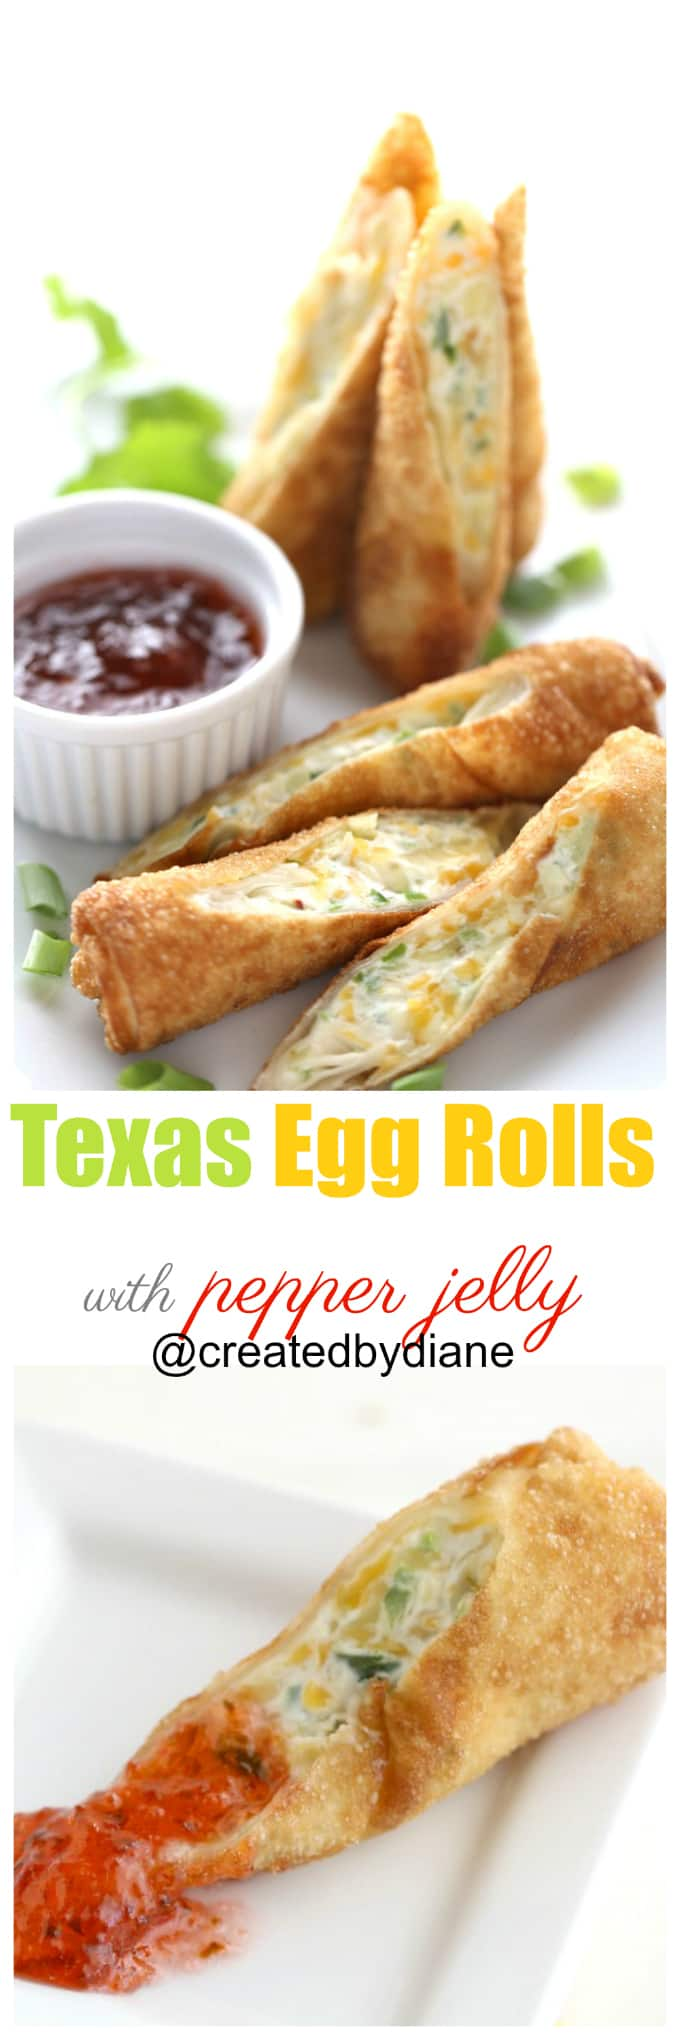 texas egg rolls with pepper jelly recipe @createdbydiane